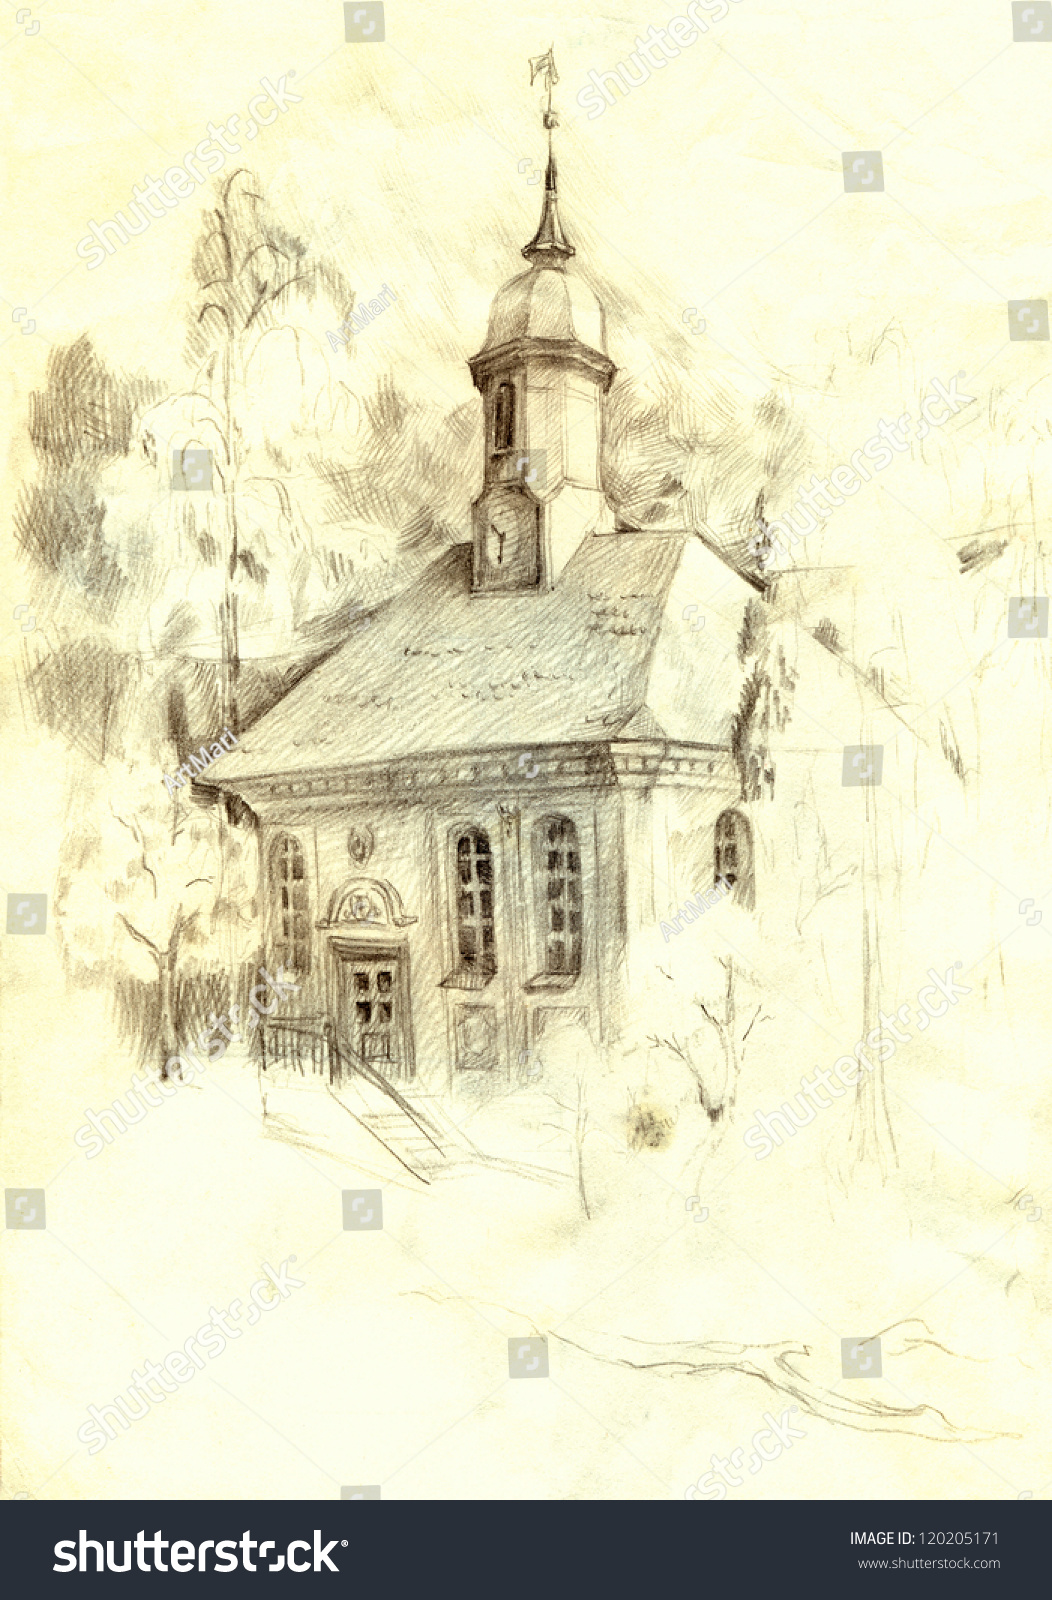 Architectural pencil sketch the old church of spreading trees of the park